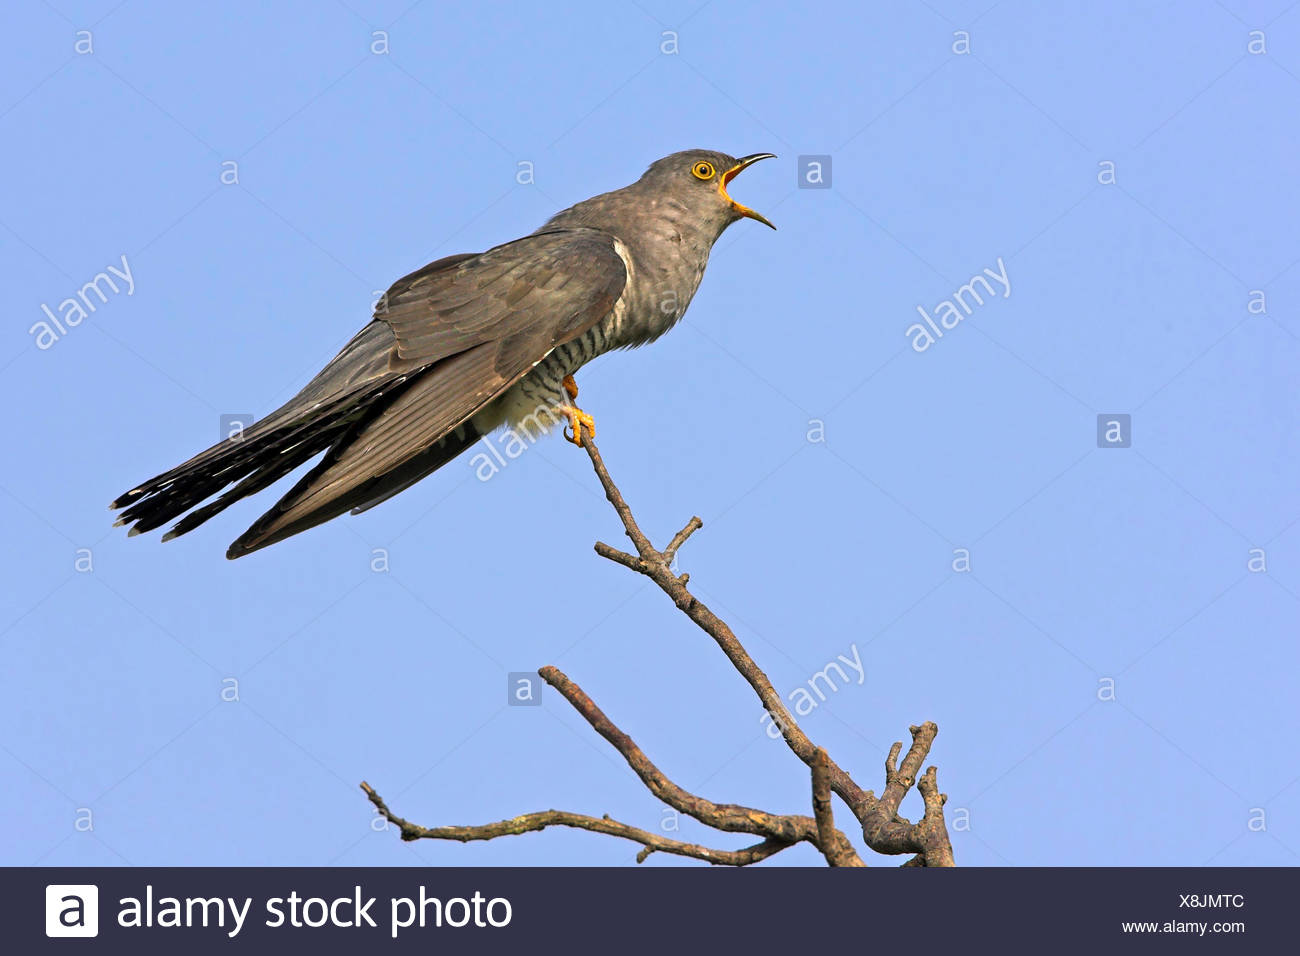 Eurasian cuckoo (Cuculus canorus), sitting on a branch and calling, Germany, Rhineland-Palatinate - Stock Image